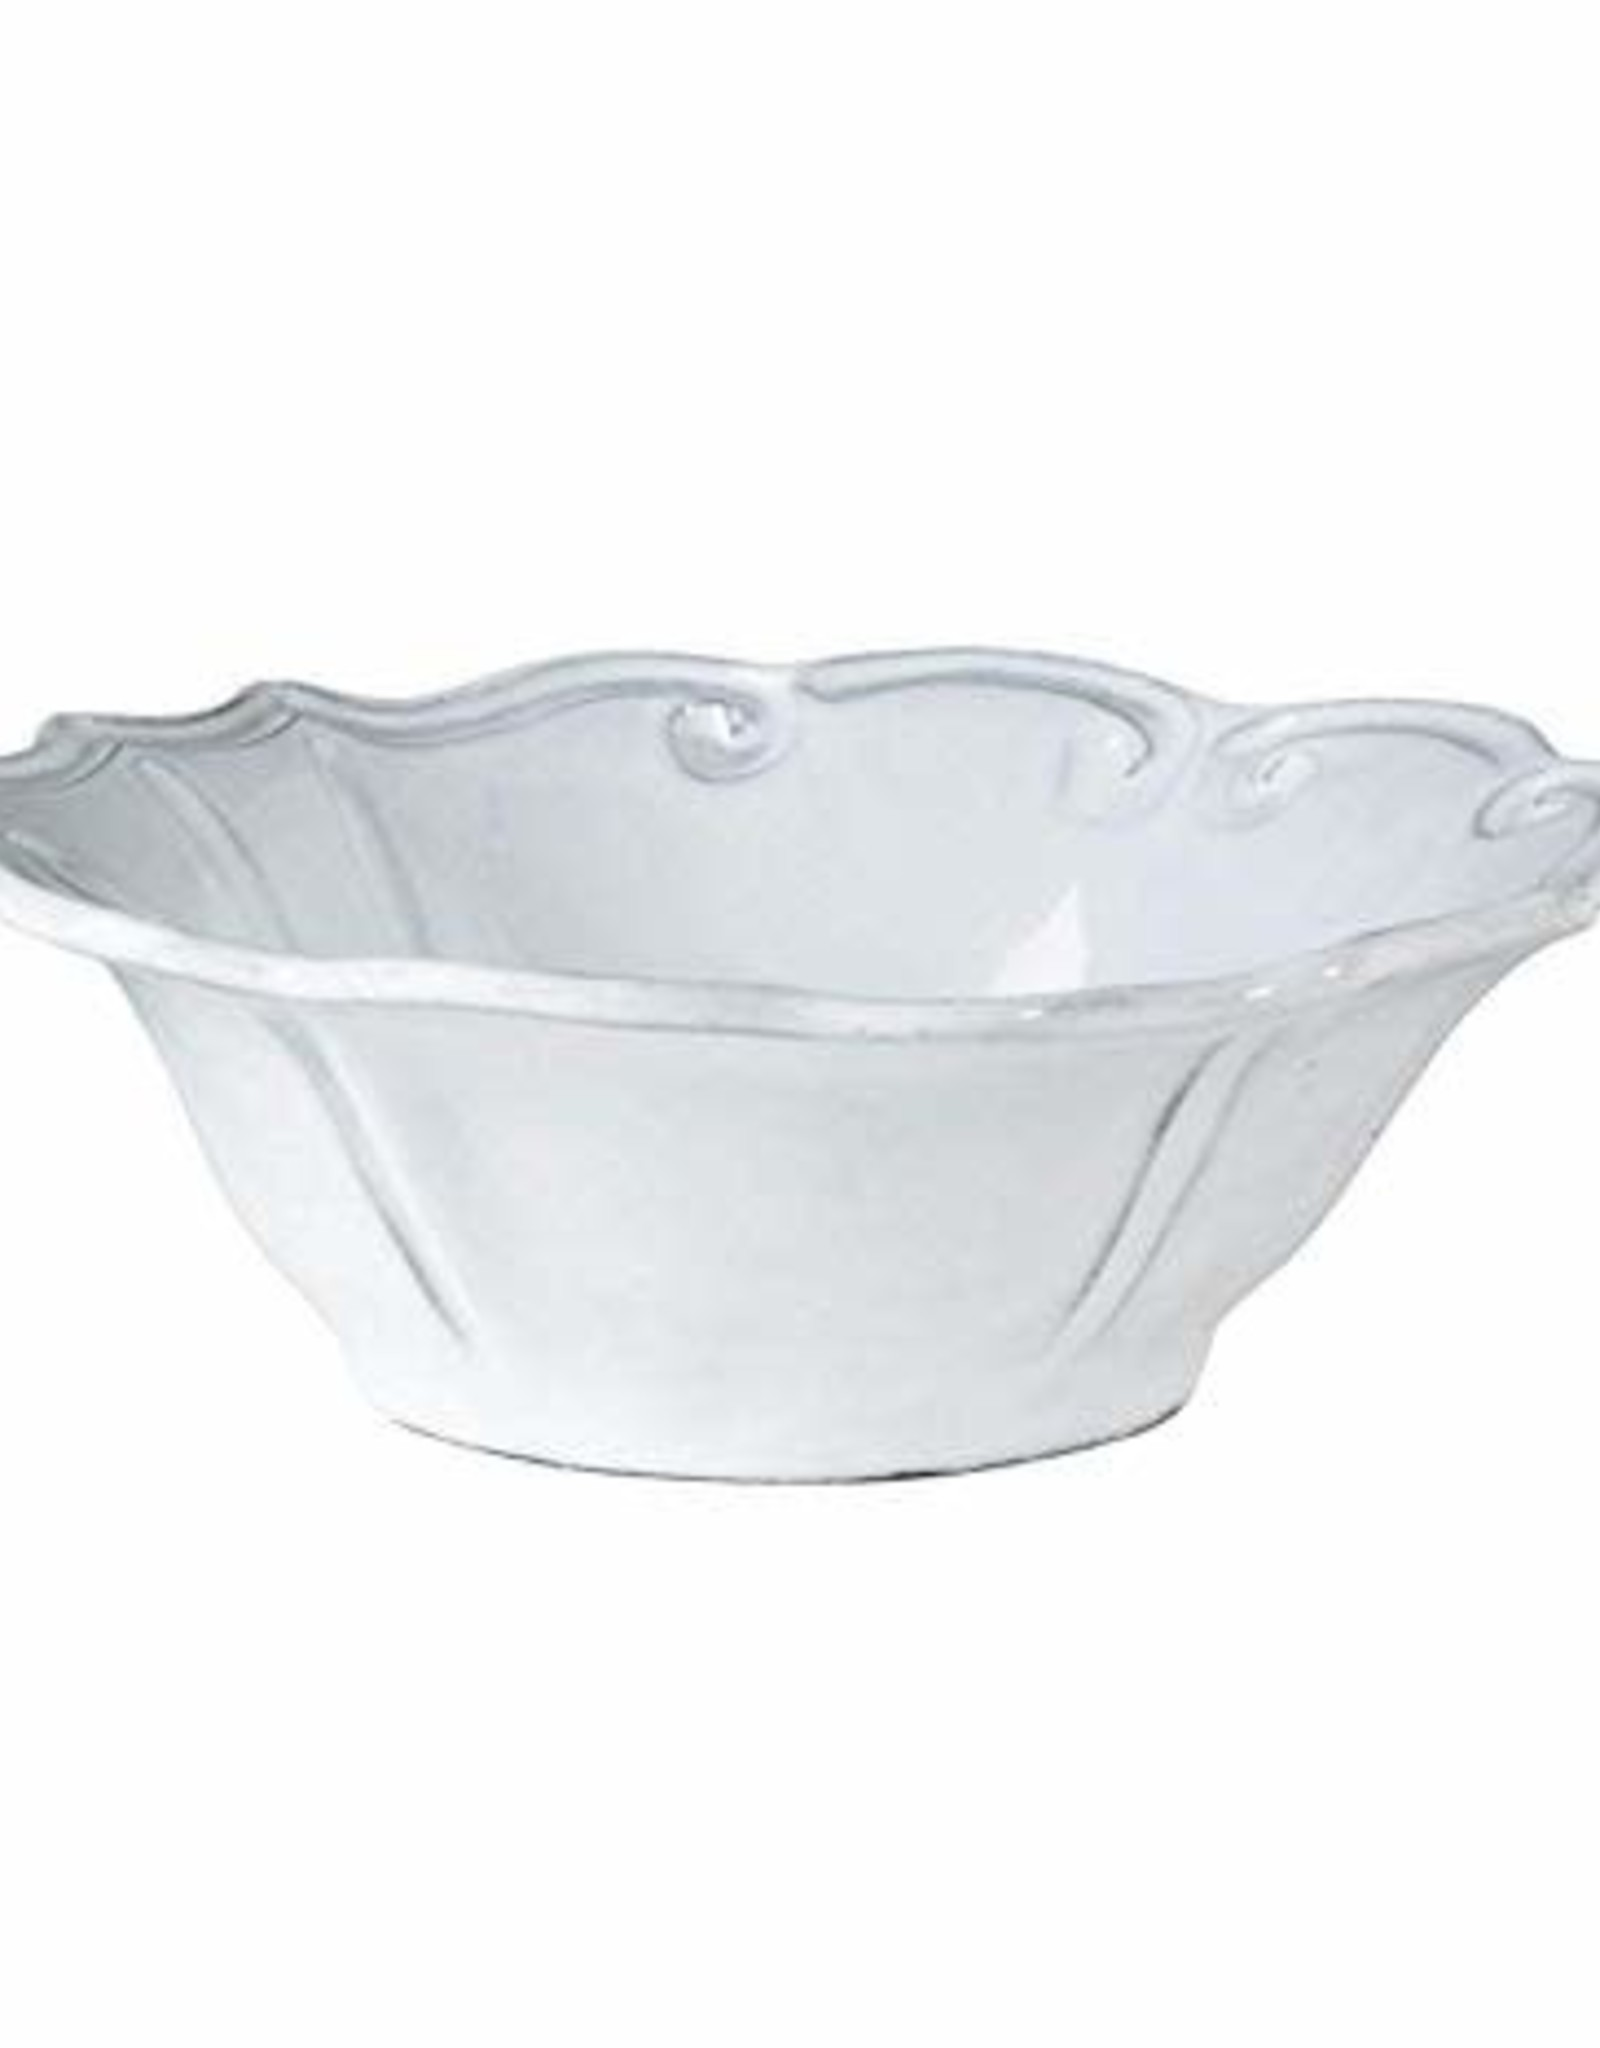 Vietri Incanto Baroque Cereal Bowl-White 7.25'd,